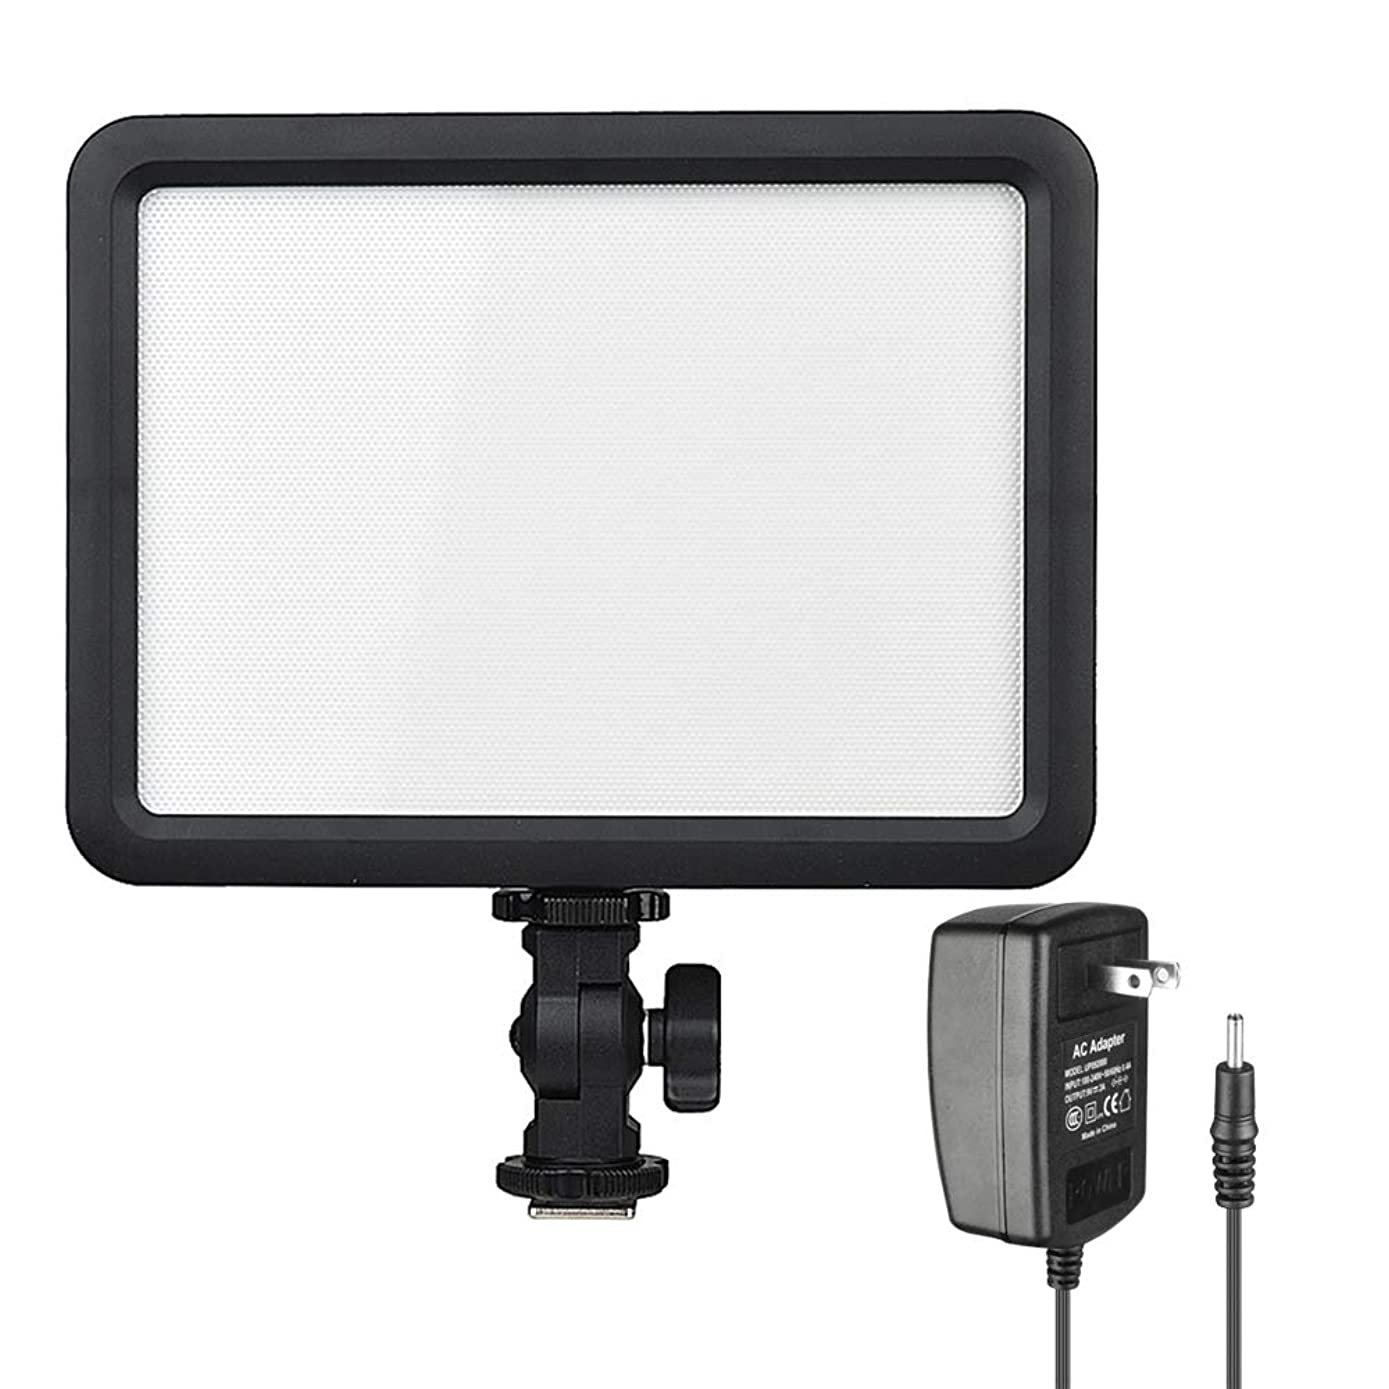 Godox LEDP120C CRI95+ Ultra-Thin Dimmable 3300K-5600K?LED Video Light Panel On Camera Continuous Lighting Compatible for DSLR Cameras,Camcorders Studio Photography,Video Shooting & AC Power Adapter